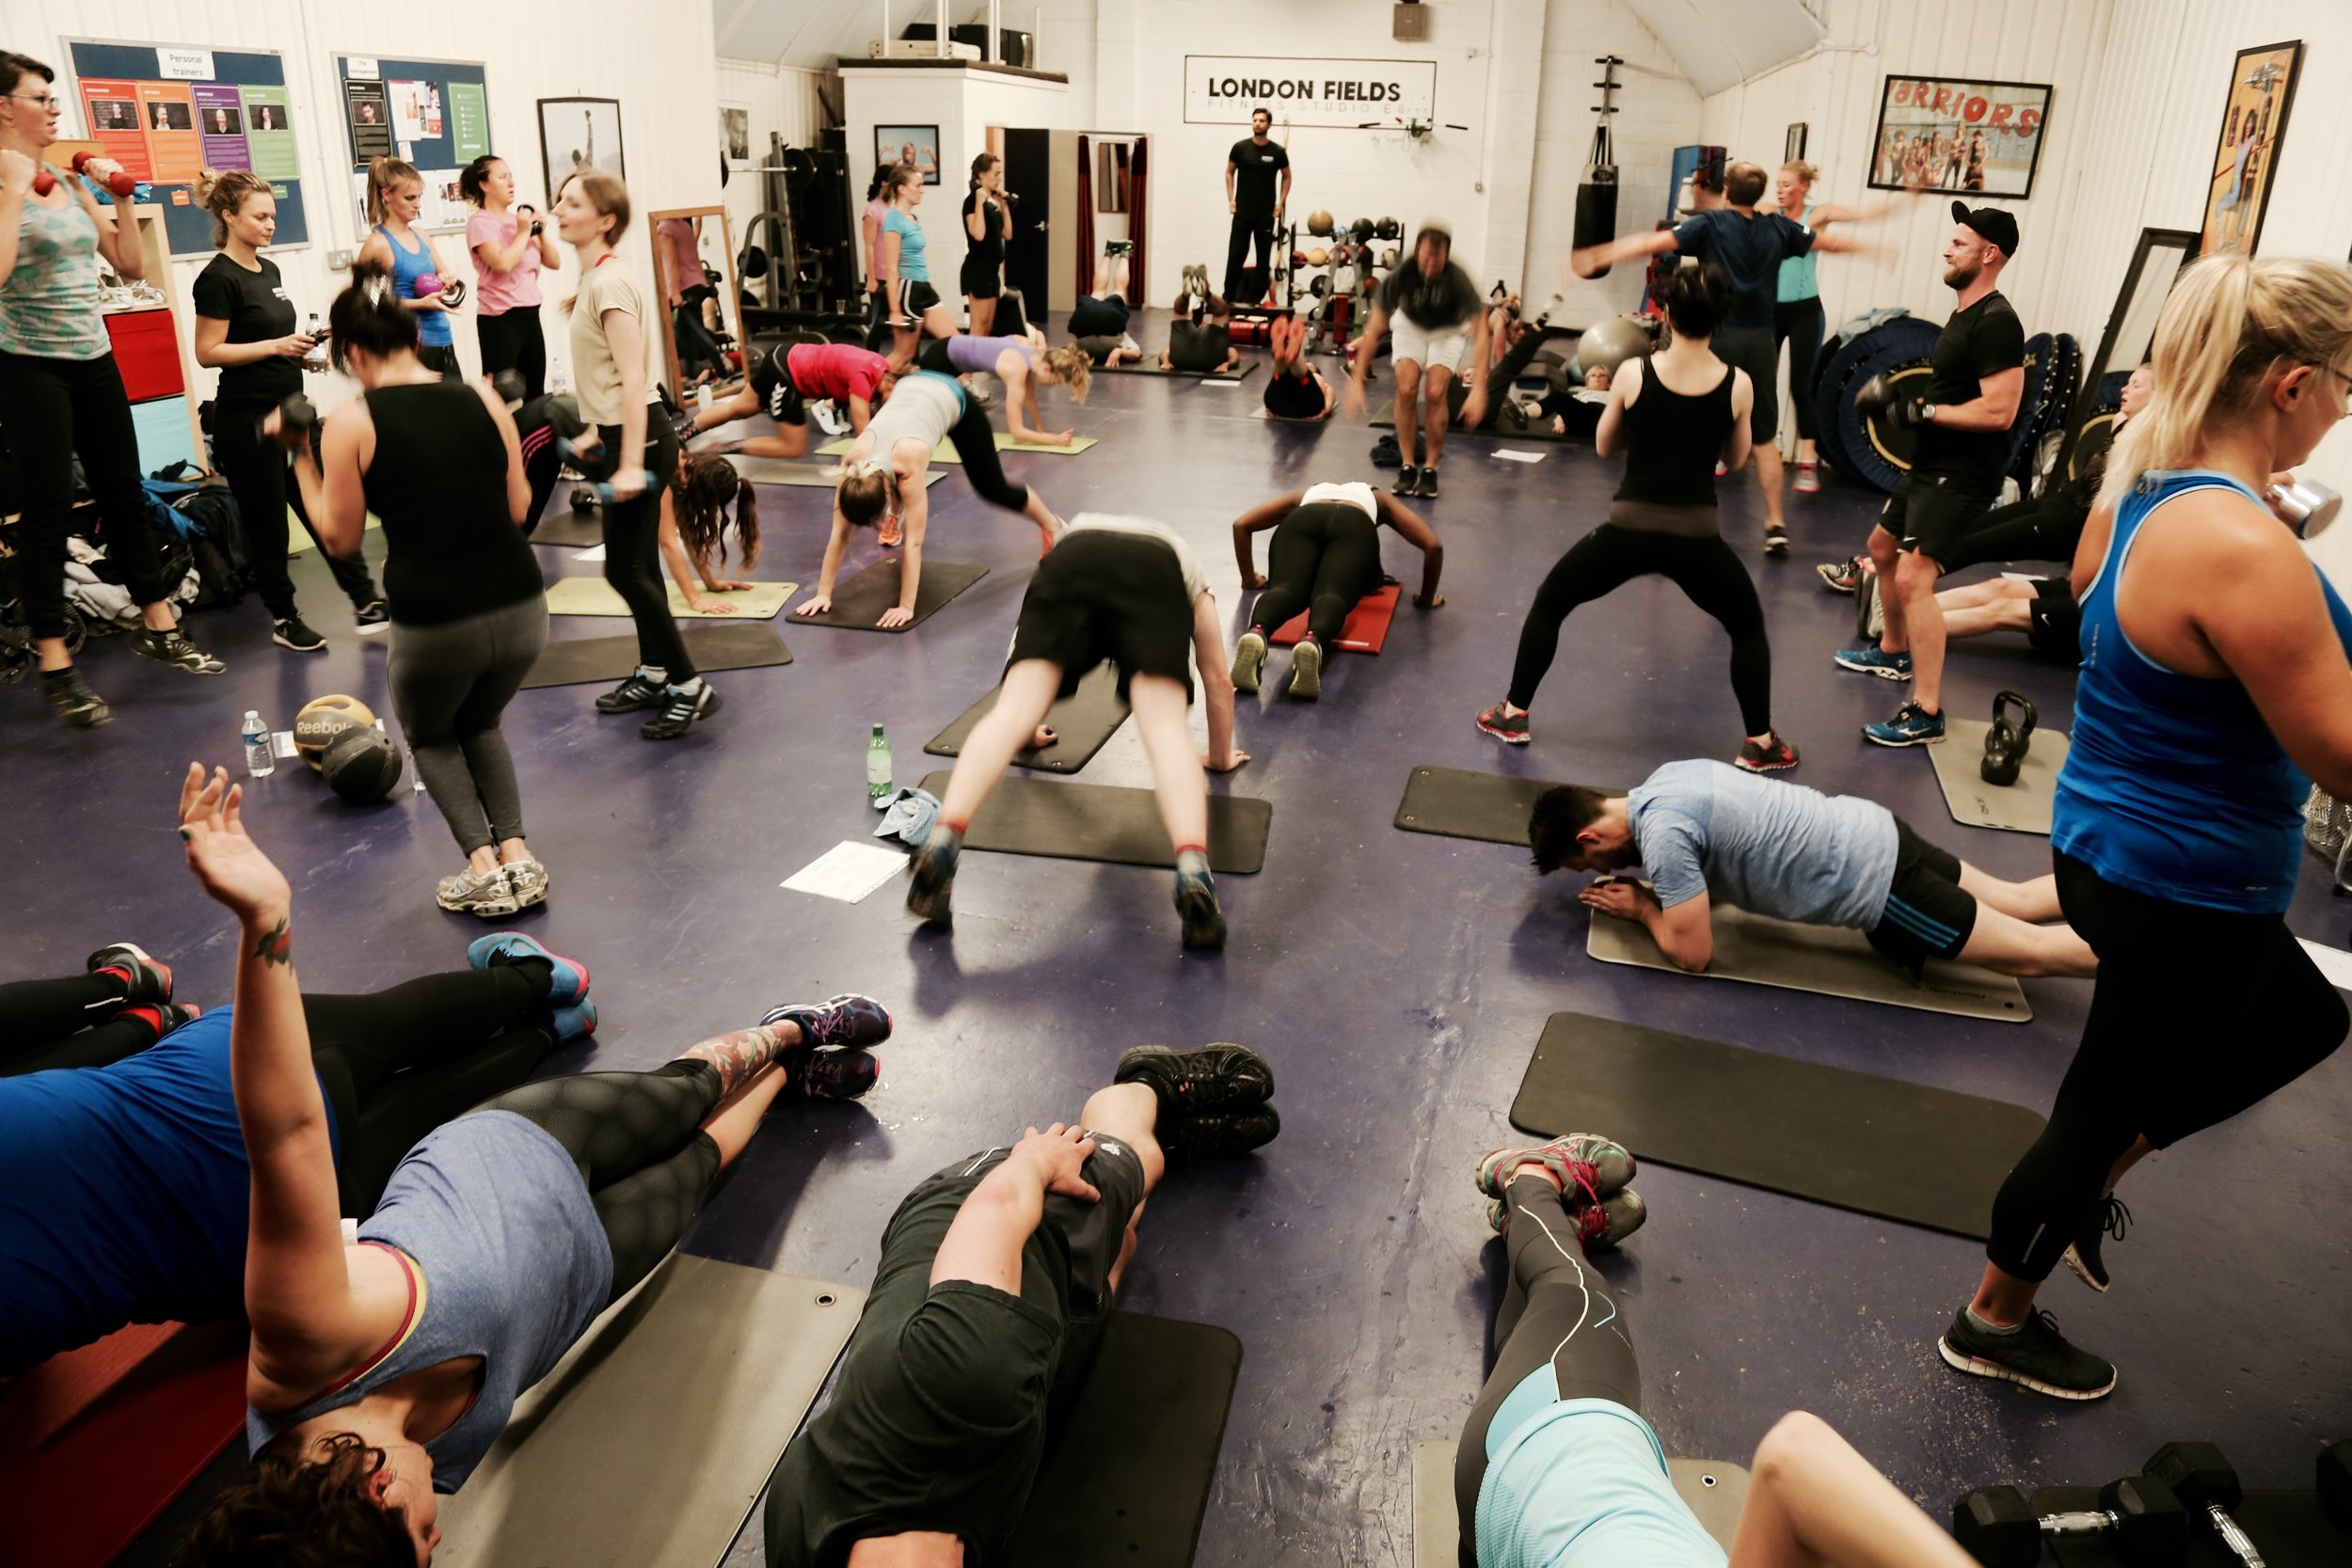 London Fields Fitness Studio Circuit Training Programs Best Exercises Home Just About The Friendliest Workout